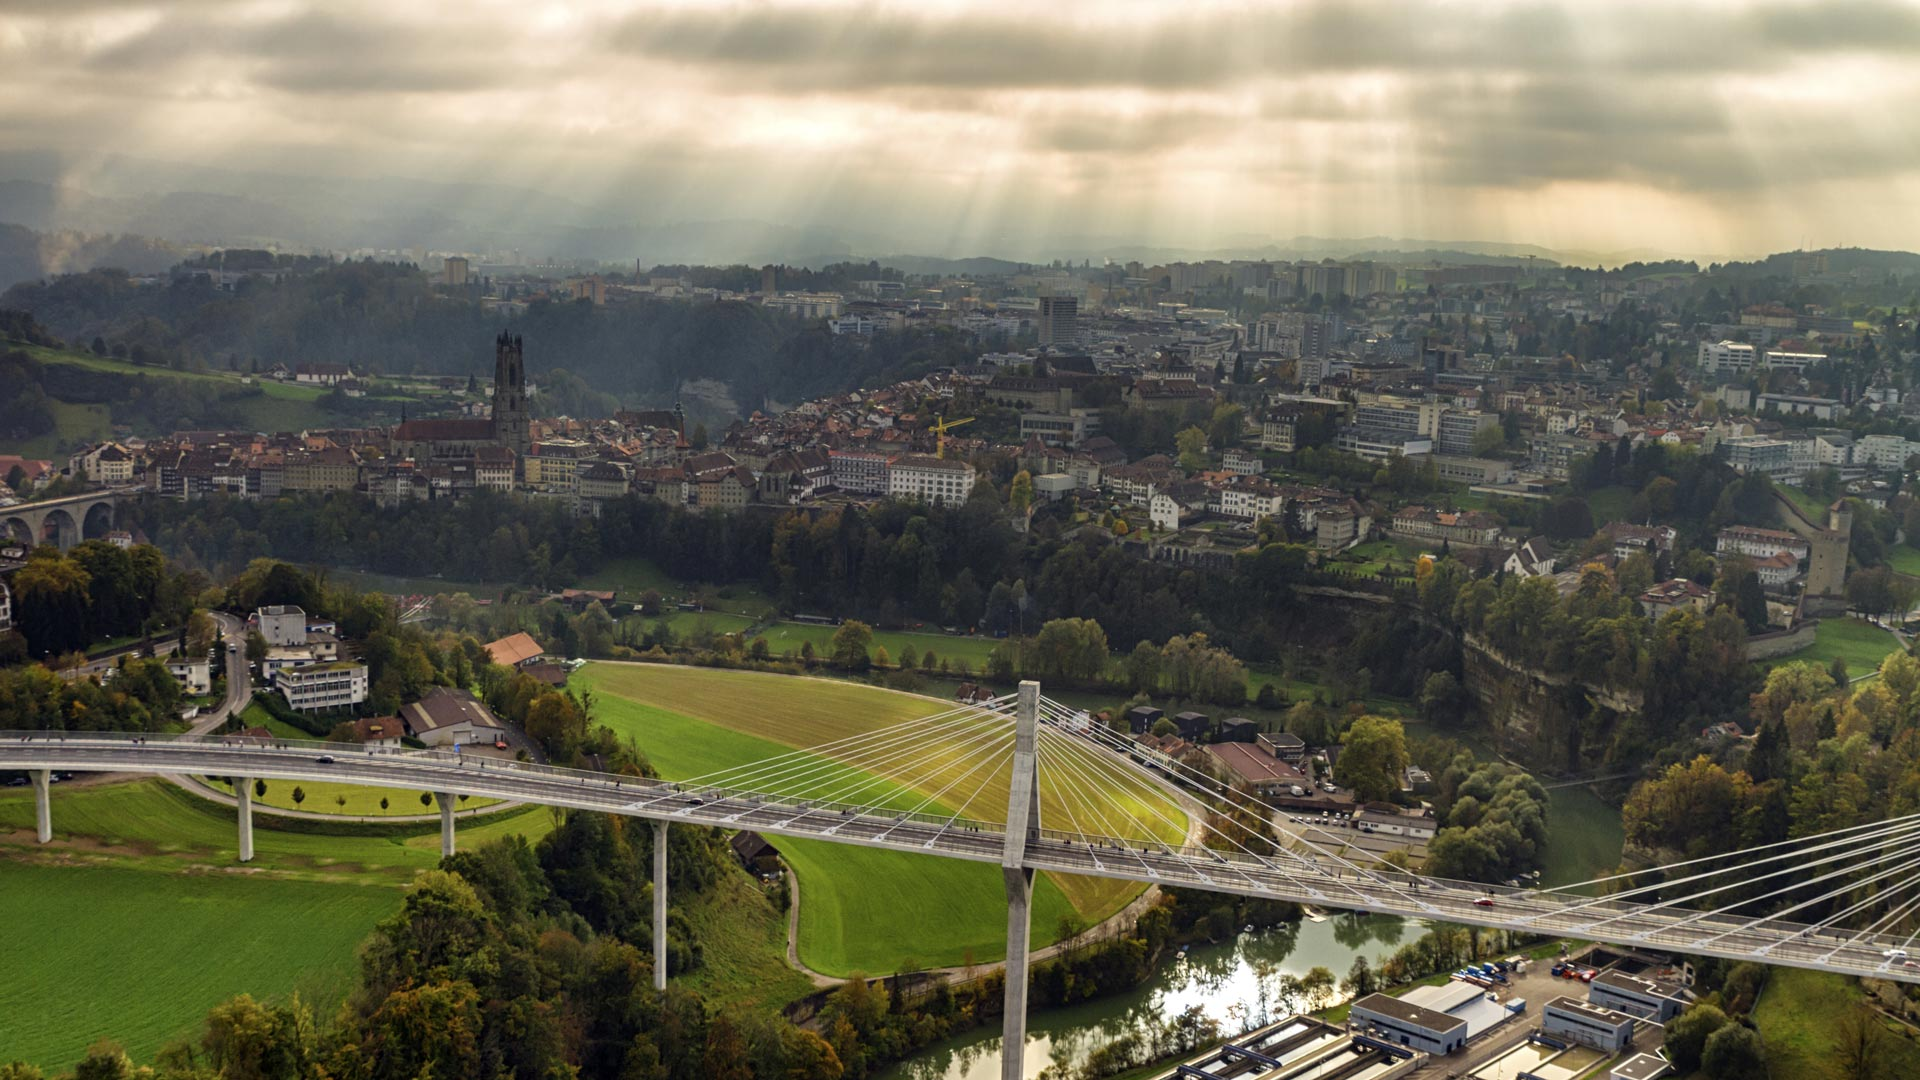 Aerial view of Fribourg with its cathedral and new Poya bridge, Switzerland